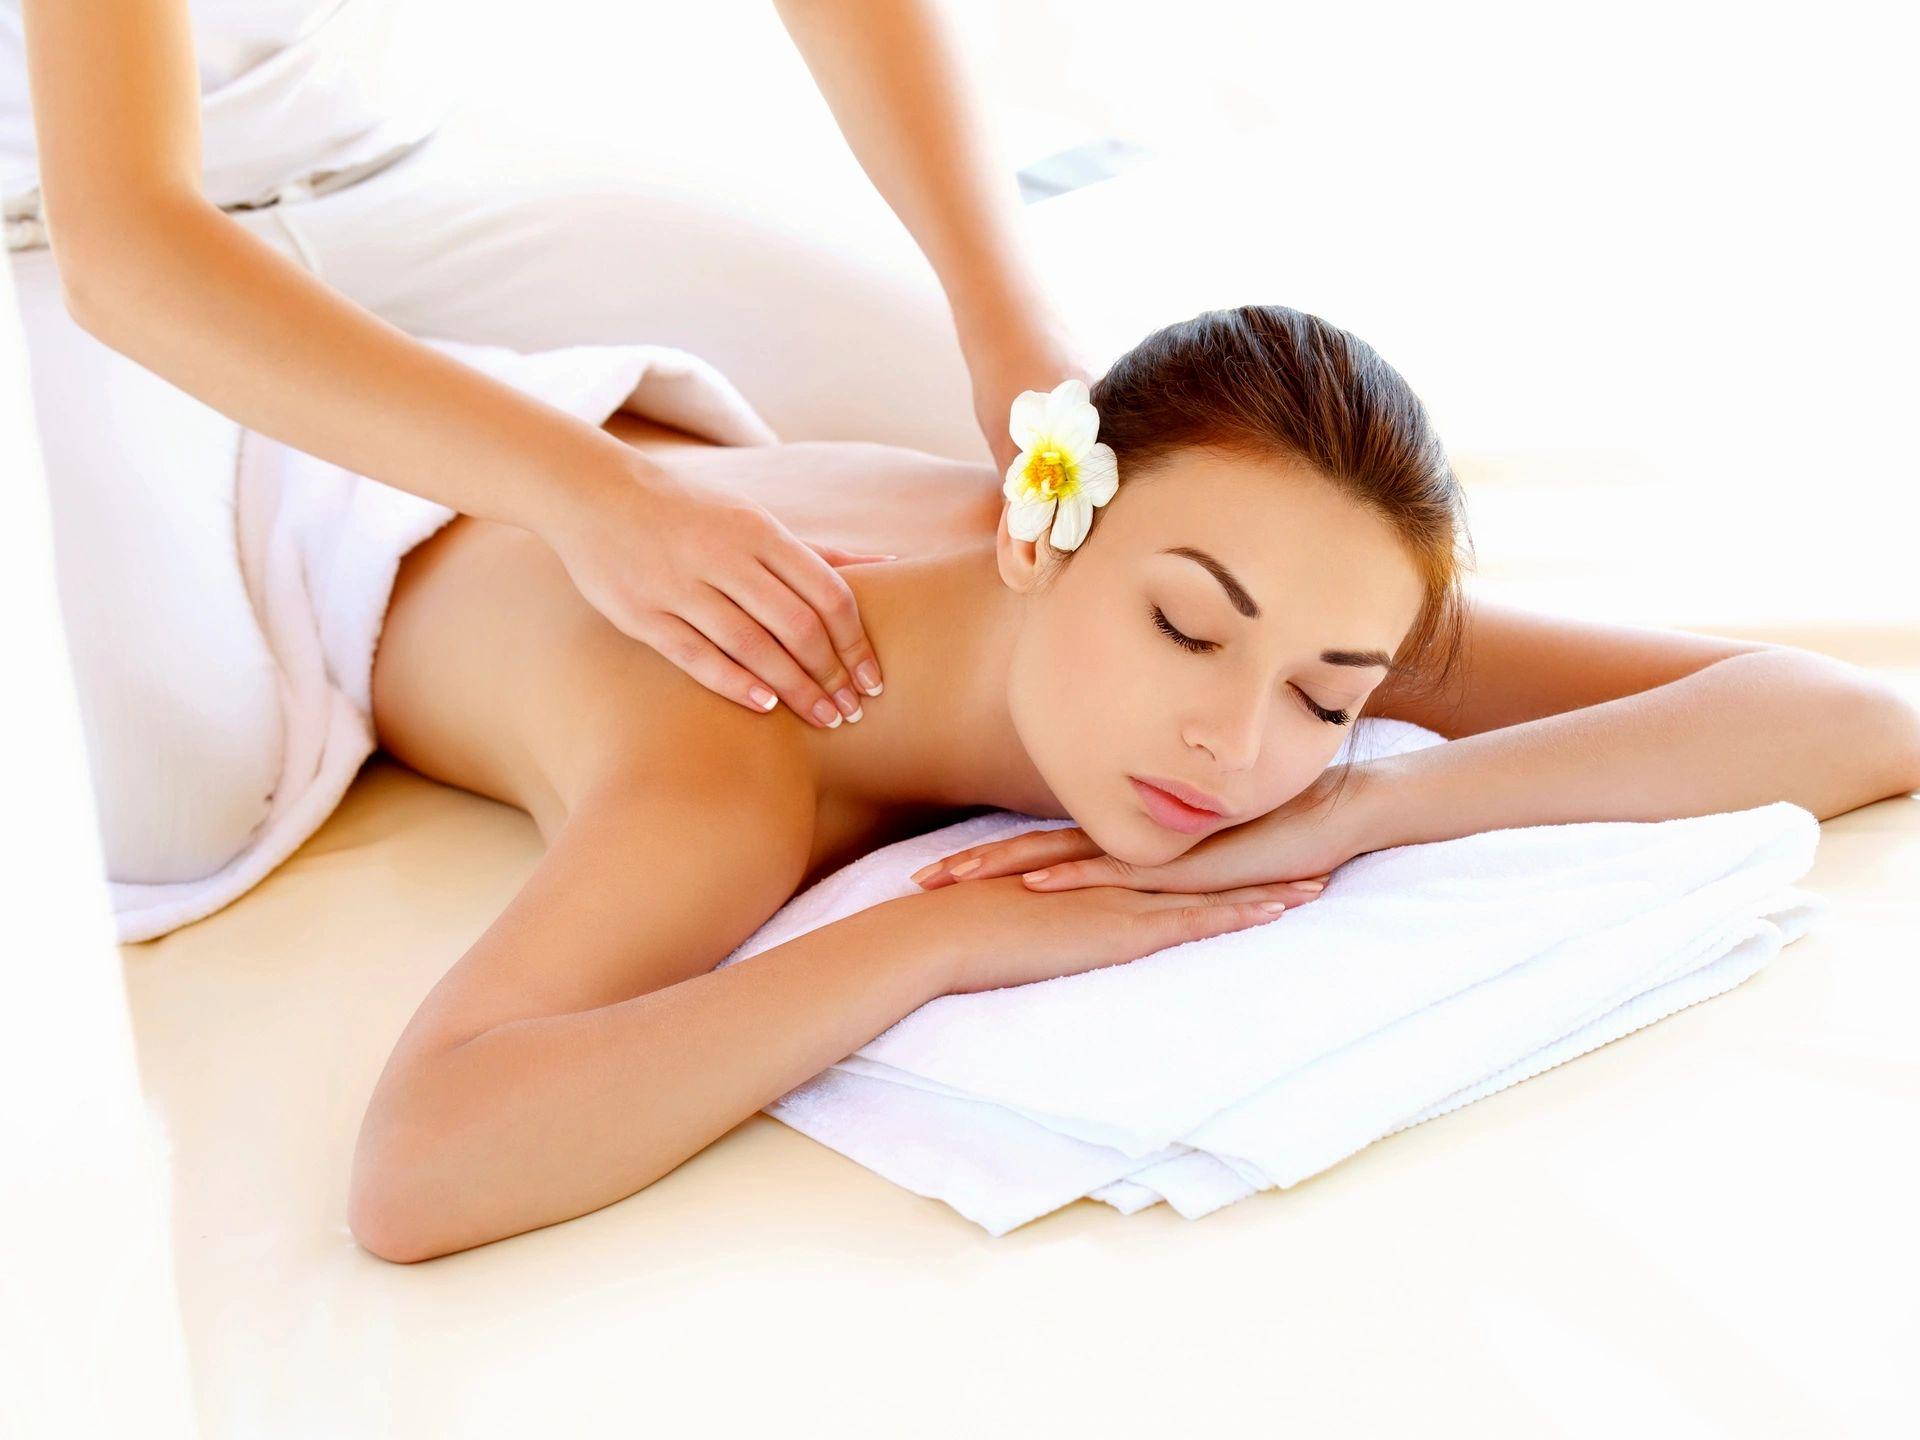 <h2>Acupressure Massage</h2><div class='slide-content'><p><span class='highlight'>Enjoy a relaxing experience of Acupressure Massage.   </span></p><p><span class='highlight'><centre>Acupressure focuses on relieving pain and discomfort by responding to tension in the body; becoming a prevention tool for the disease process.</centre></span></p></div><a href='https://naturalhealthnovascotia.com/acupressure/' class='btn' title='Read more'>Read more</a>